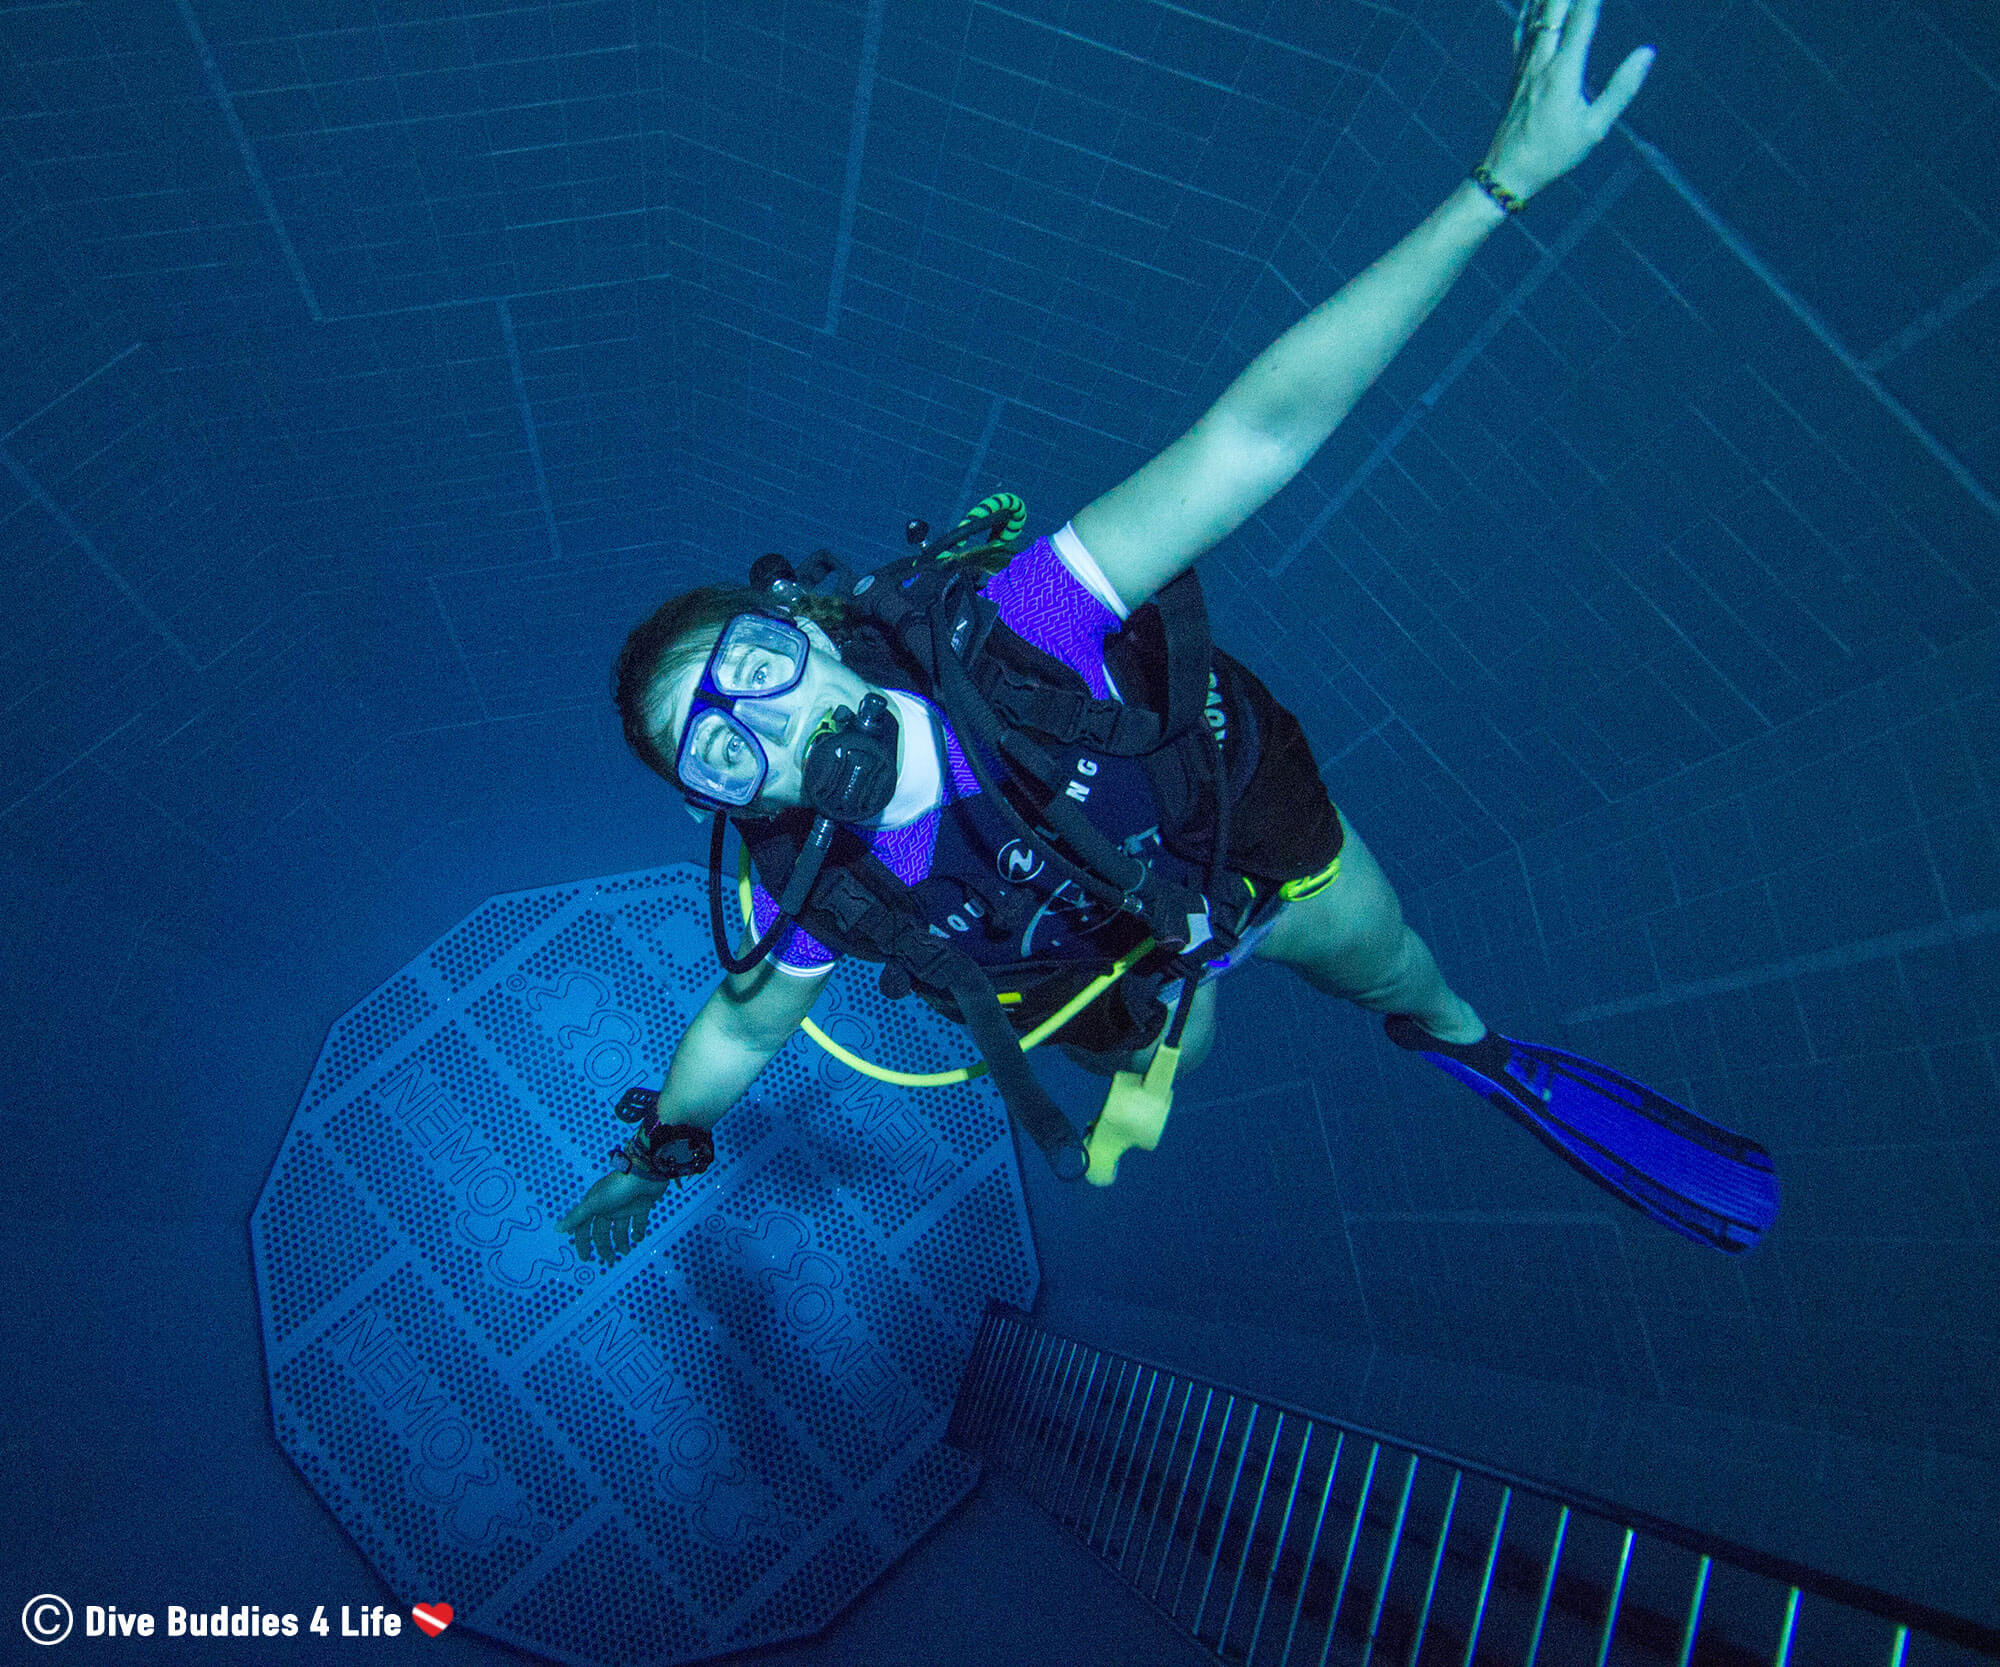 Ali Free Falling In Her Scuba Diving Equipment To The Bottom Of The Nemo 33 Pool In Brussels, Belgium